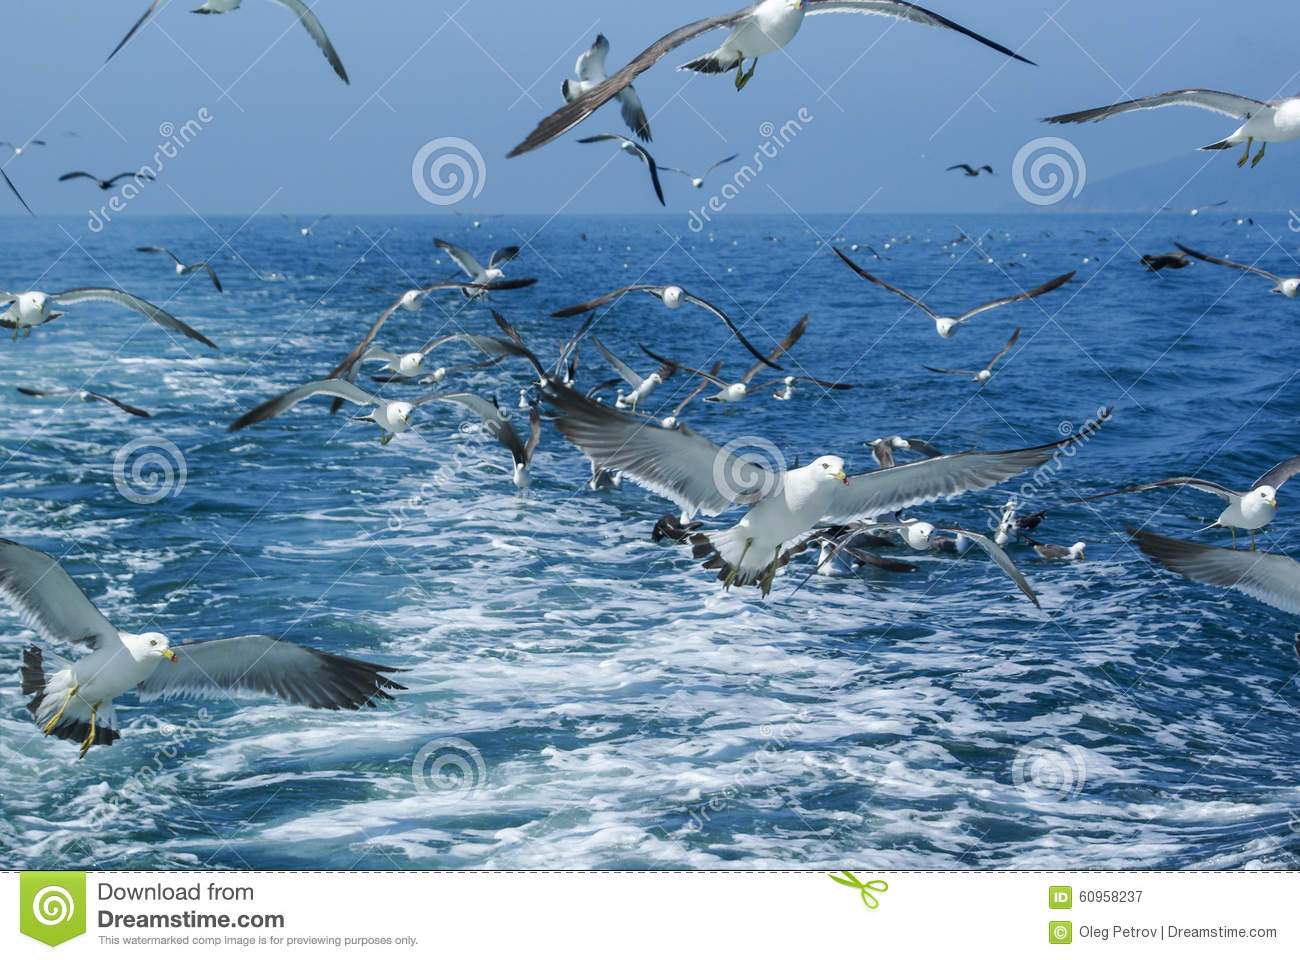 Flock Of Seagulls Flying Over Sea Behind The Ship. Stock